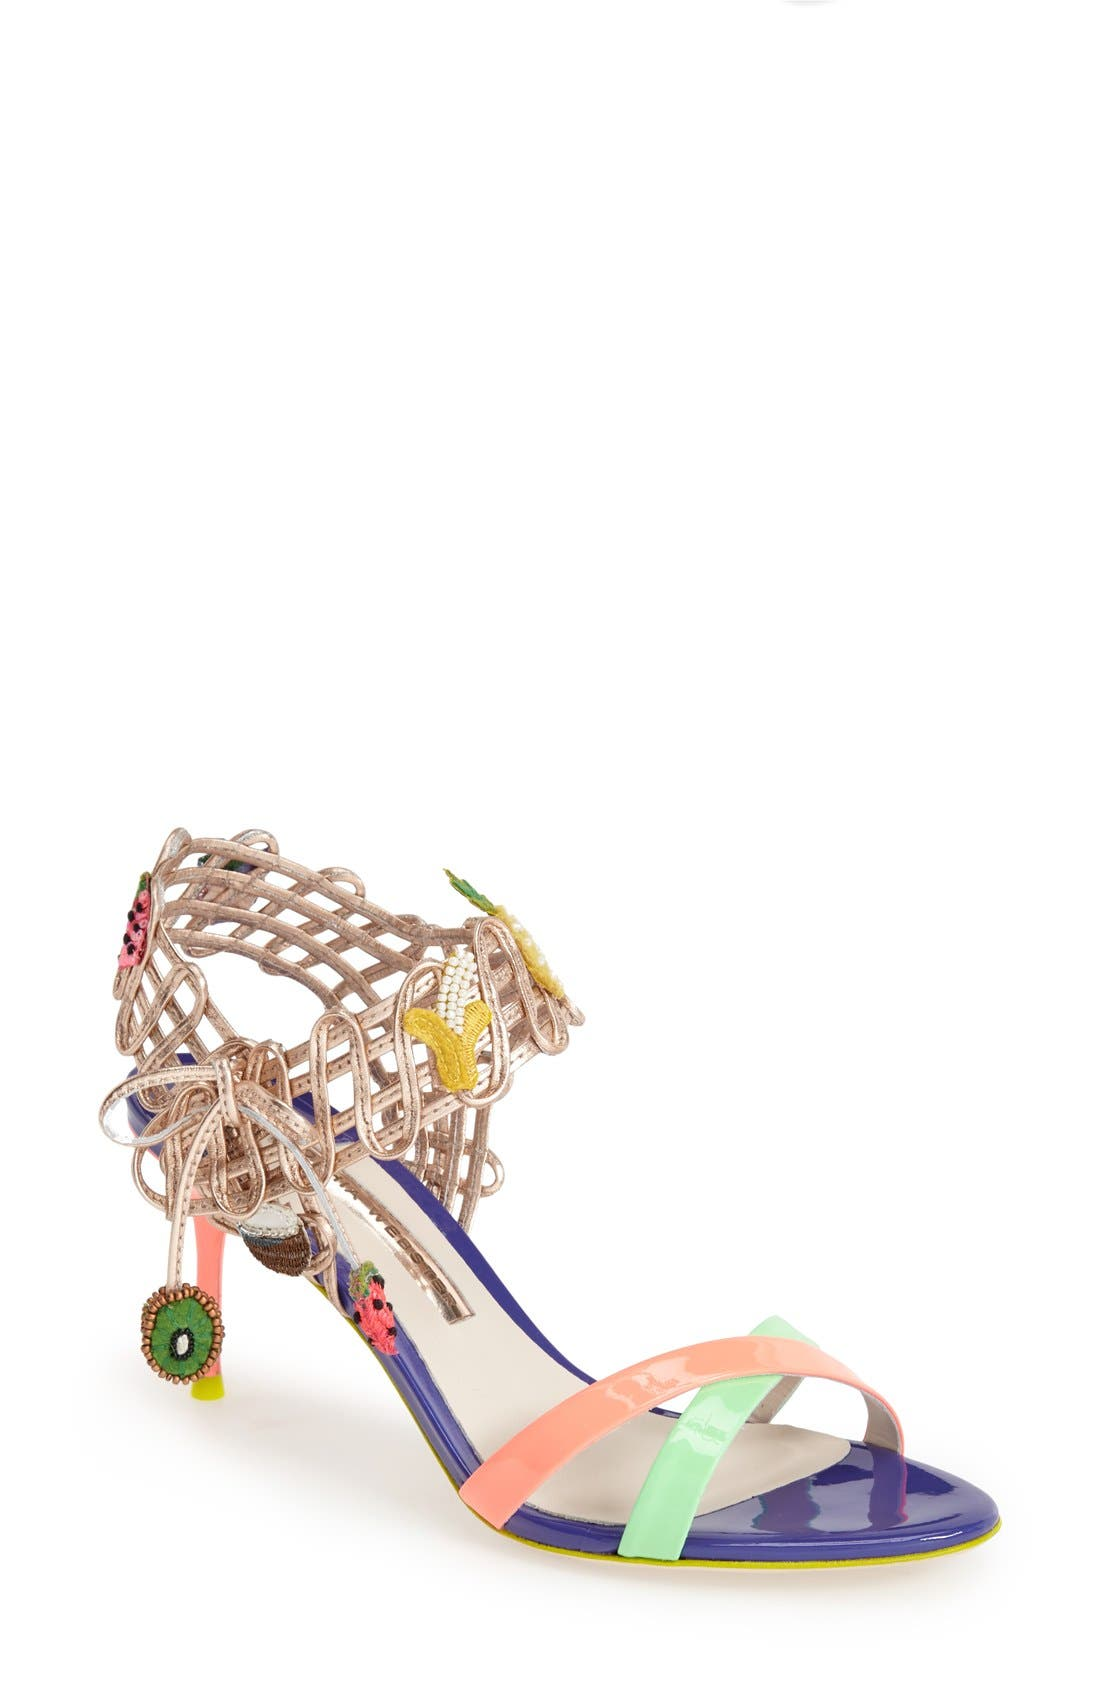 Alternate Image 1 Selected - Sophia Webster 'Delphine Fruit' Sandal (Women)